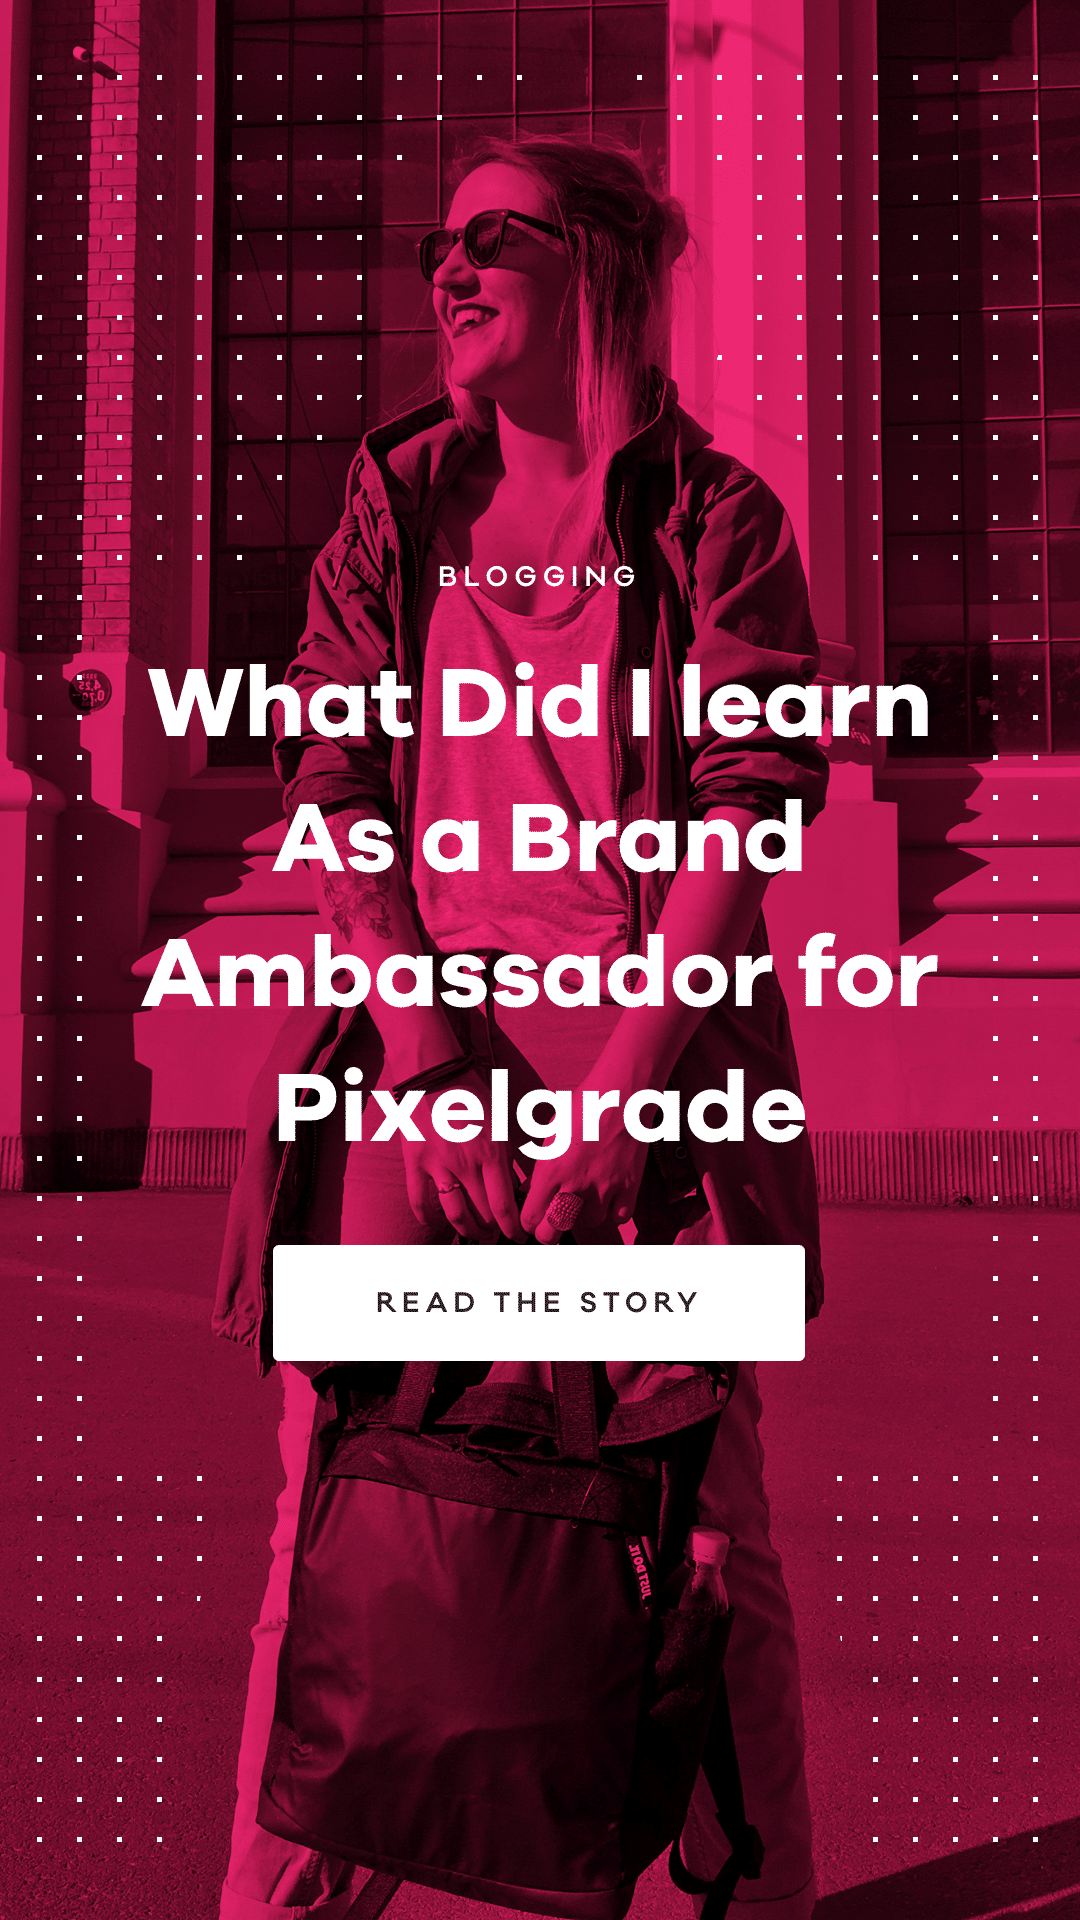 Our first brand ambassador wrote valuable insights about how things program worked out for her. Learn from her experience and apply it.